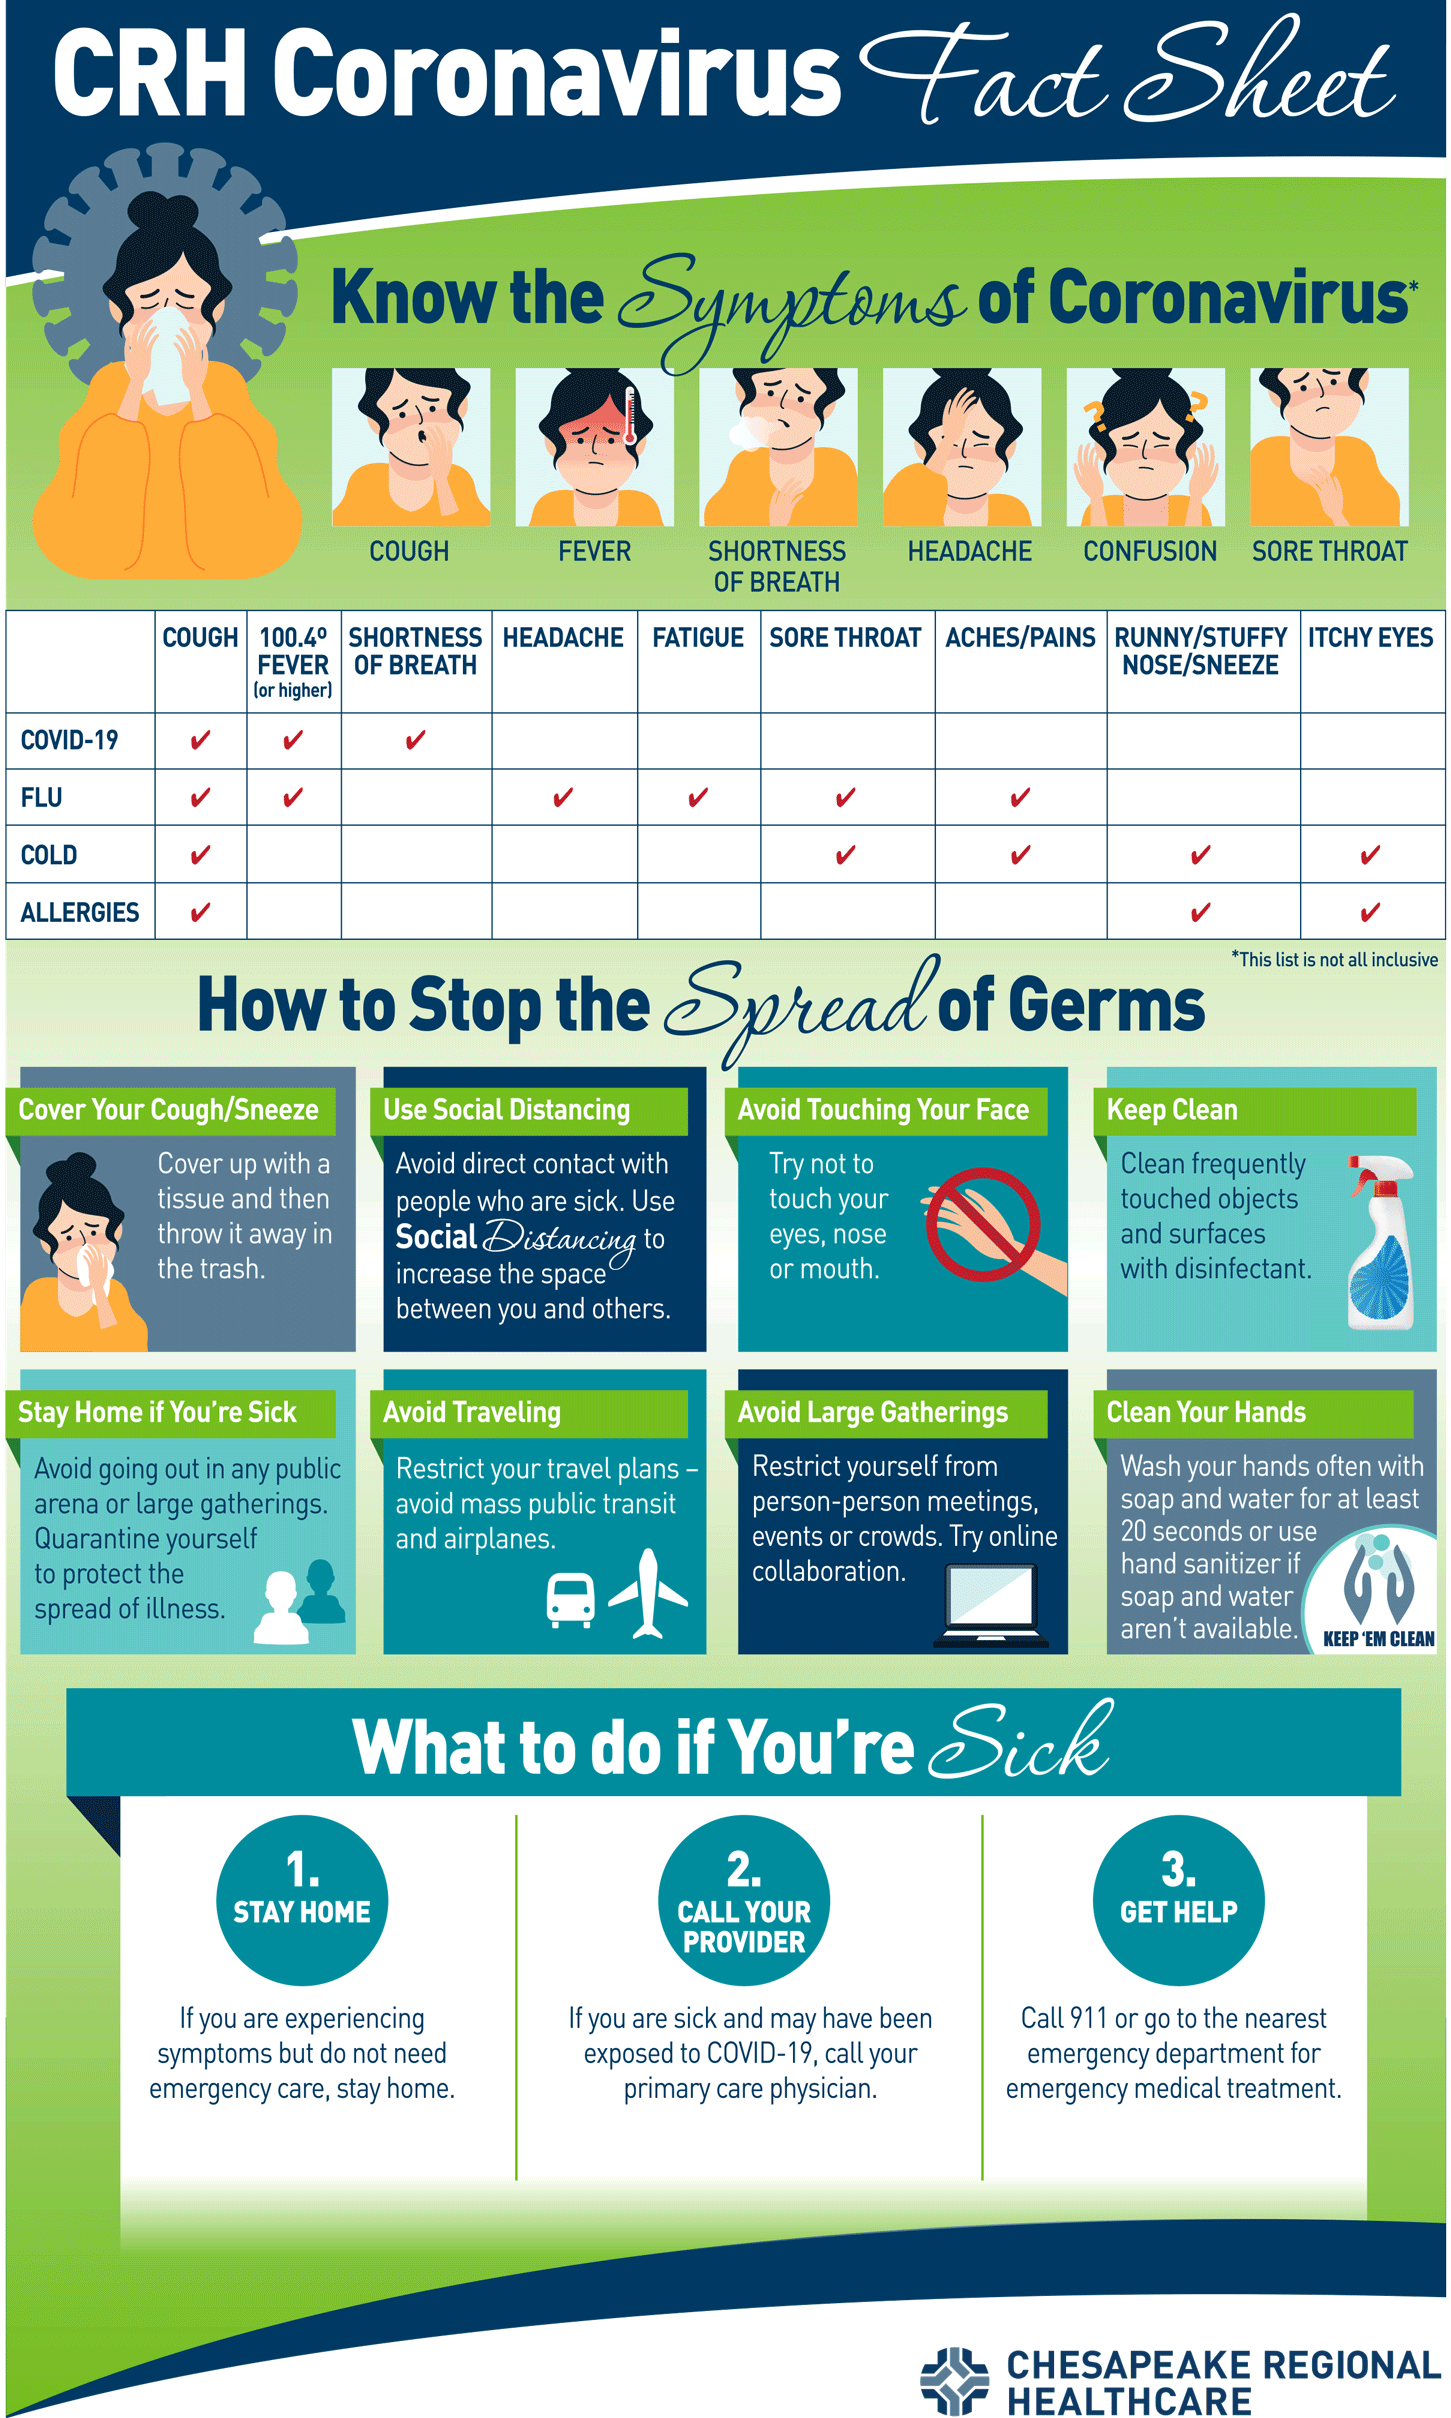 CRHCoronavirusInfographic_8_UPDATED